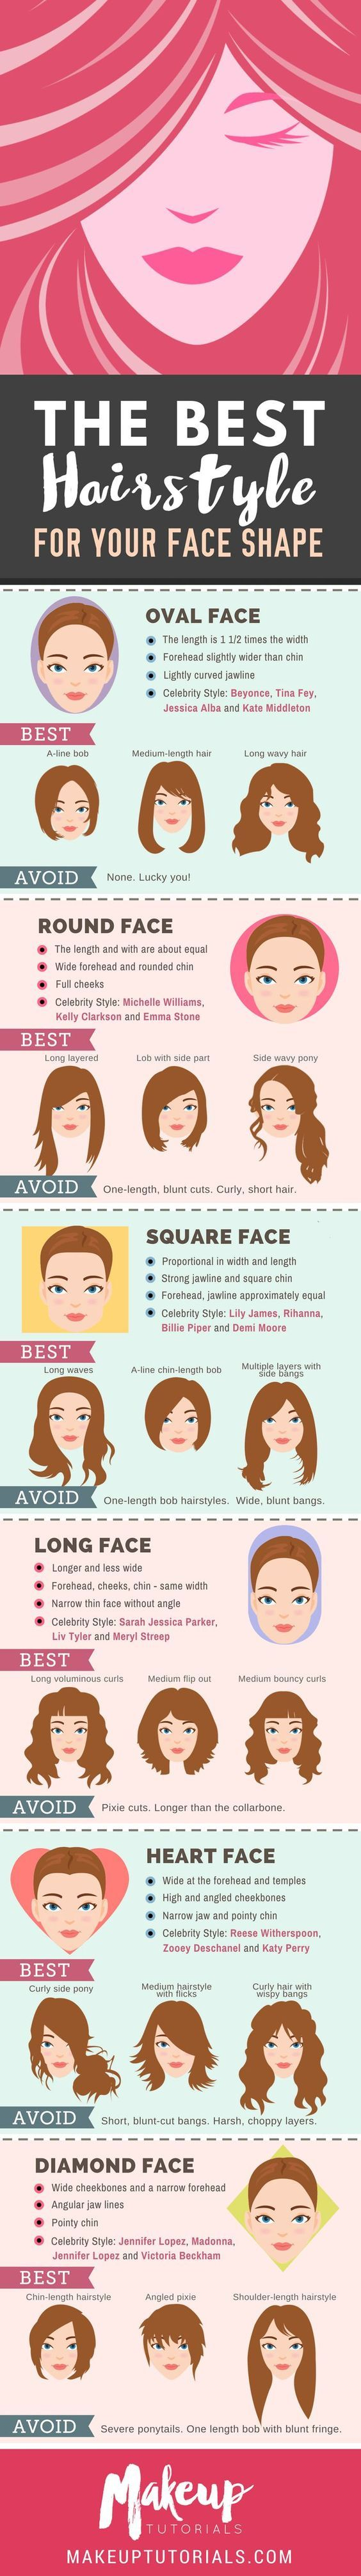 The ultimate hairstyle guide for your face shape the best haircut